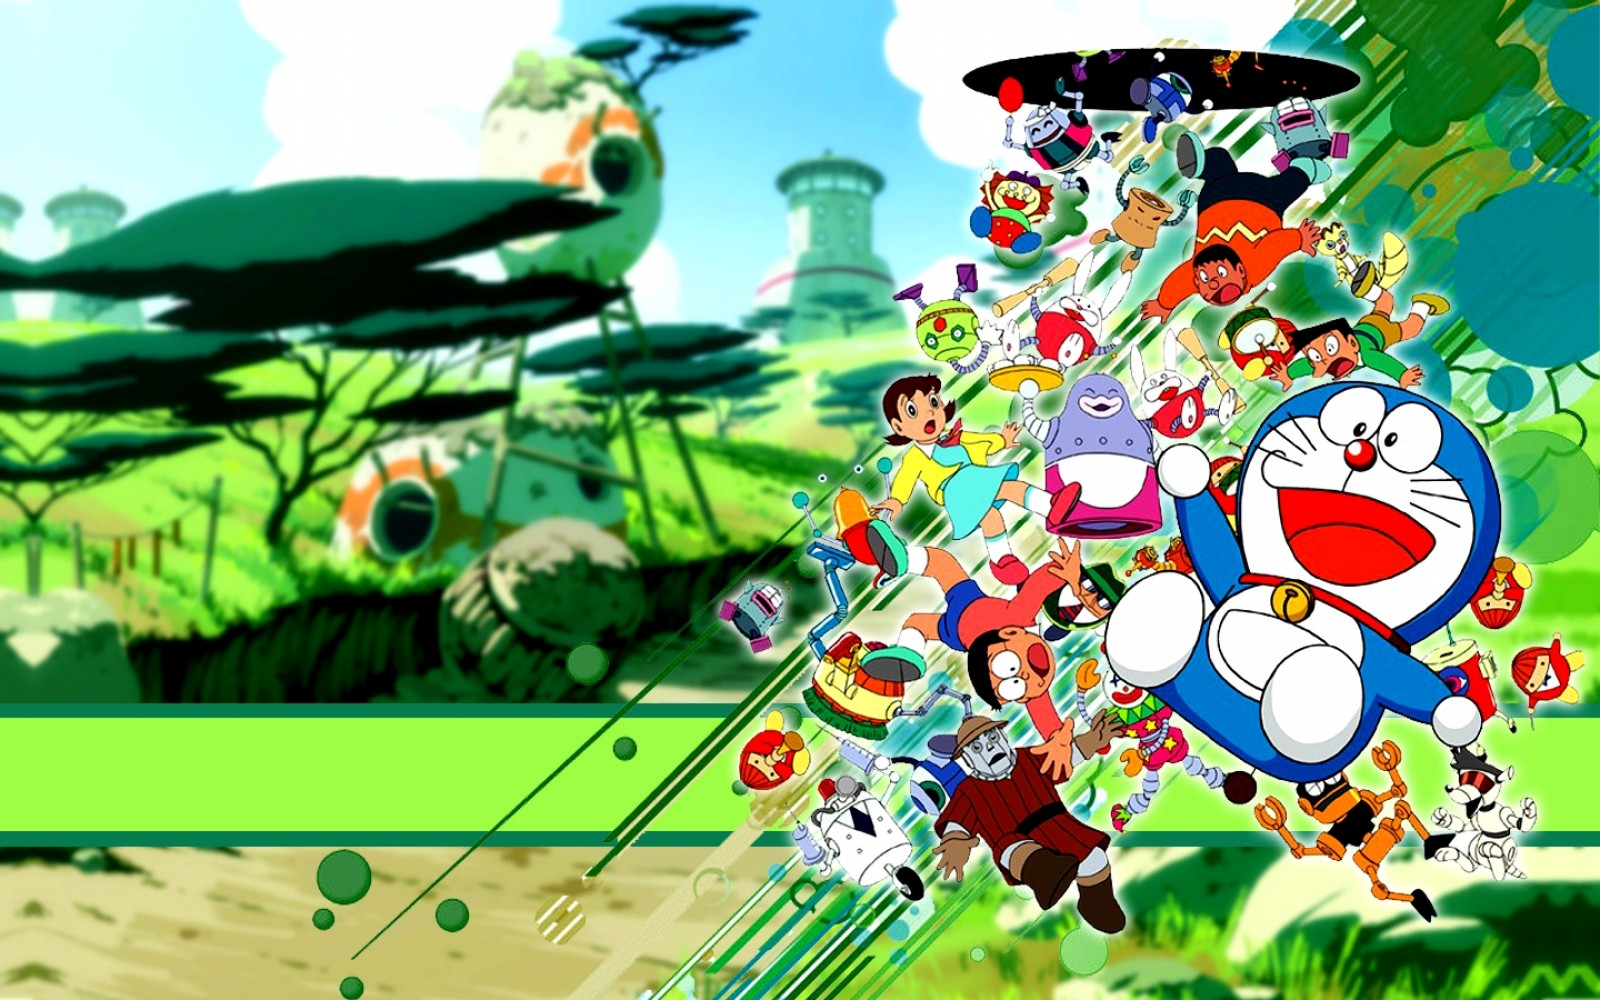 6 IMAGE WALLPAPER DESCRIPTION FOR DORAEMON WALLPAPER FREE